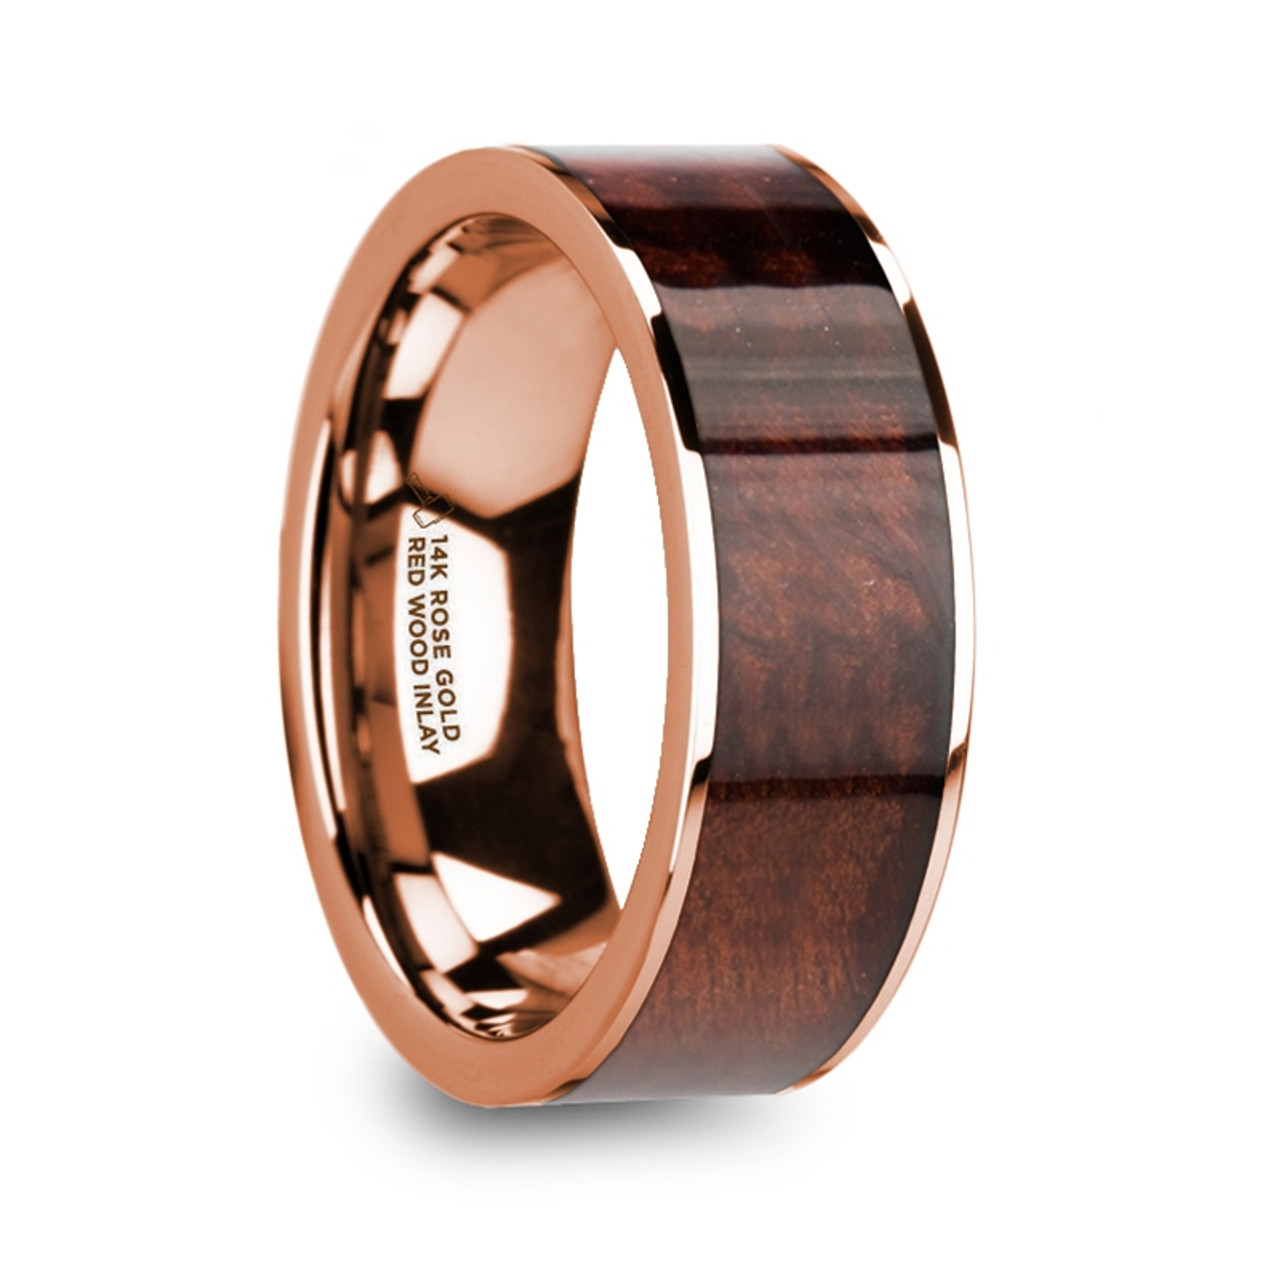 Mens Rose Gold Wedding Band.Morel Polished 14k Rose Gold Men S Wedding Band With Red Wood Inlay